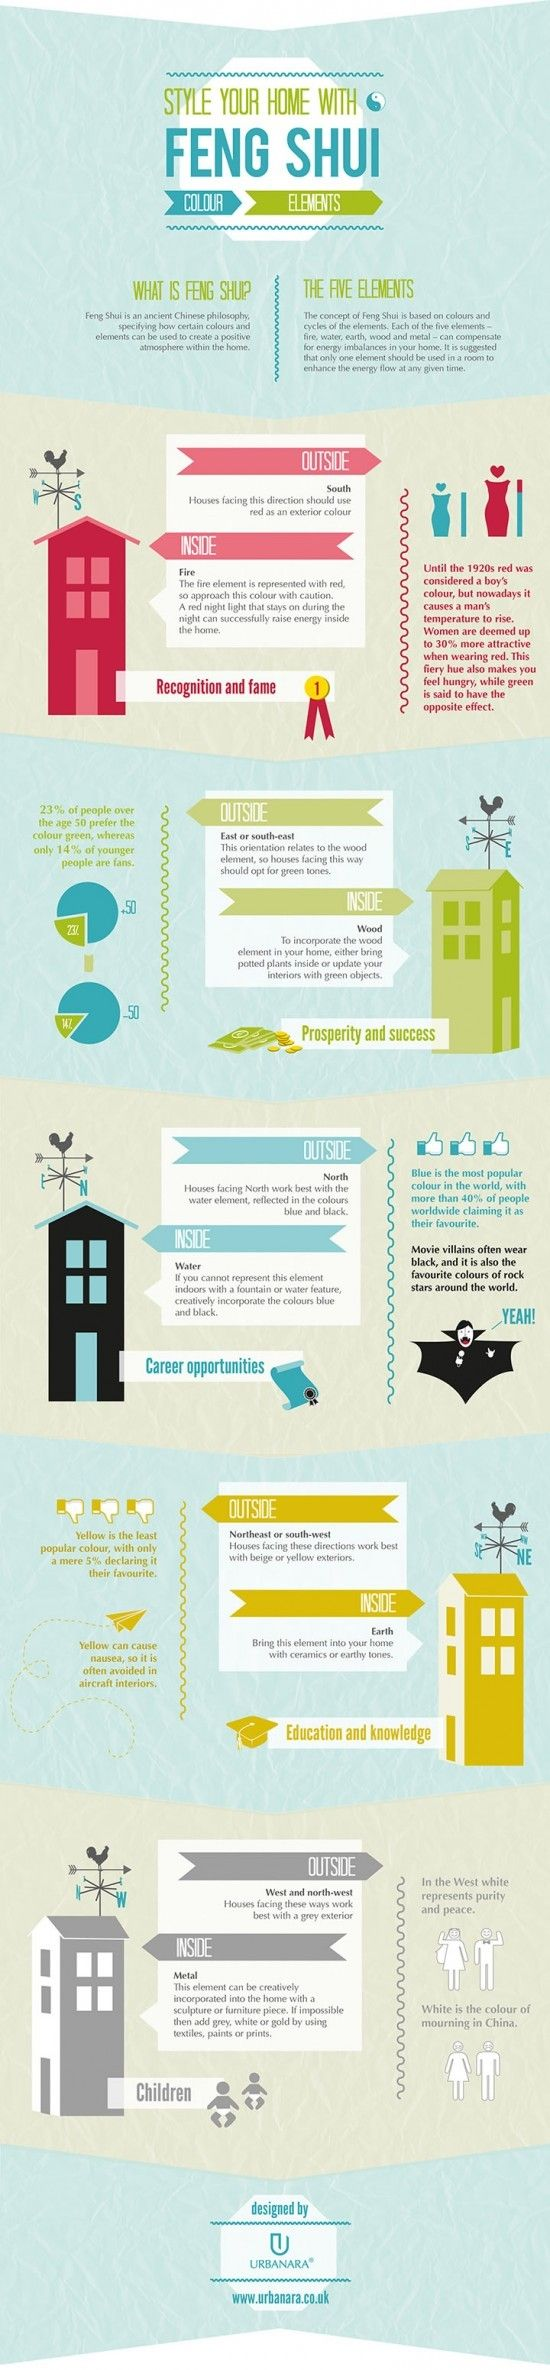 Feng shui tips what it is and how it works infographic for Tips de feng shui para el hogar